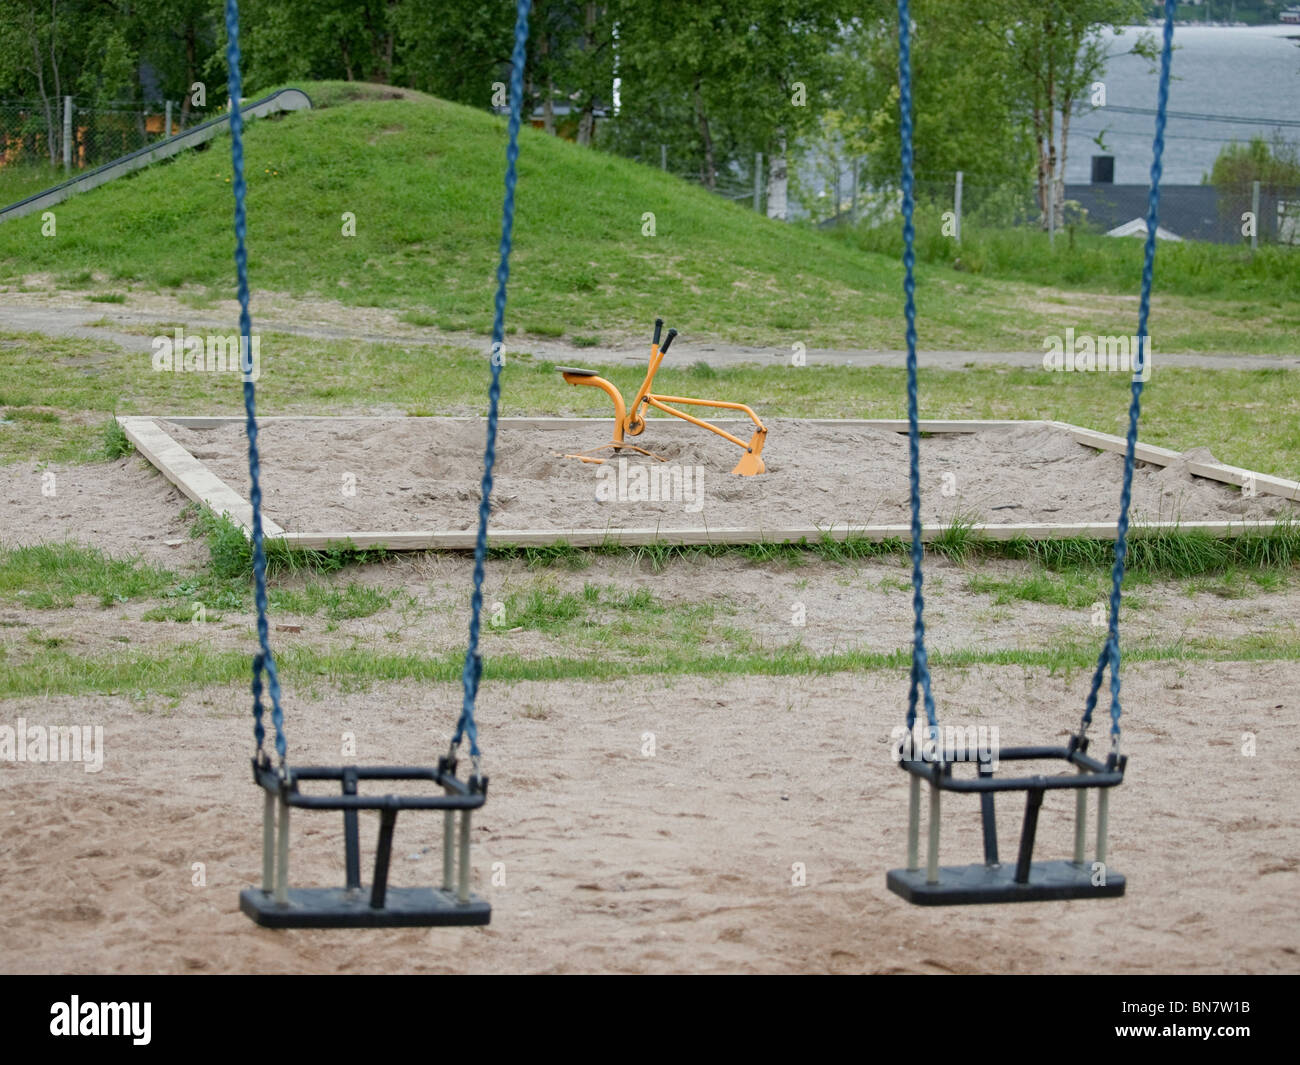 Swings in a playground blurred with a toy digger in the background. - Stock Image